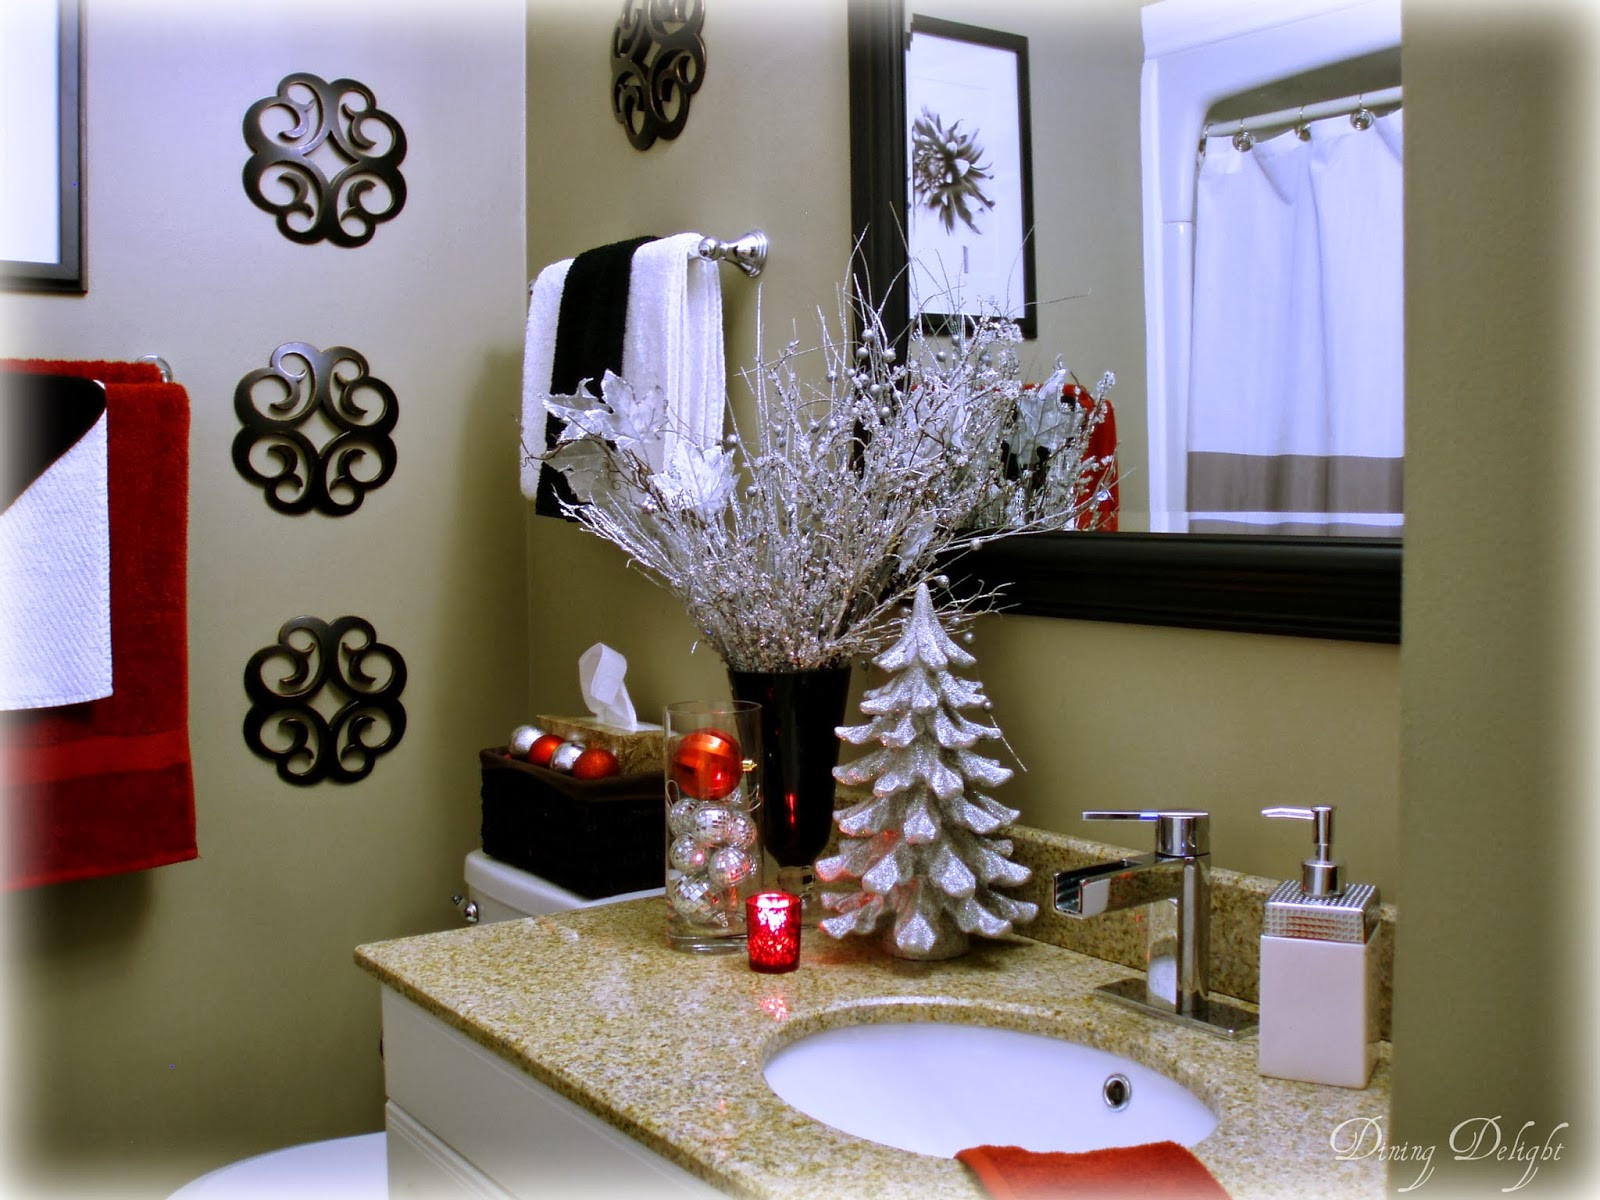 Christmas Bathroom Decorations  Dining Delight Christmas Home Tour 2013